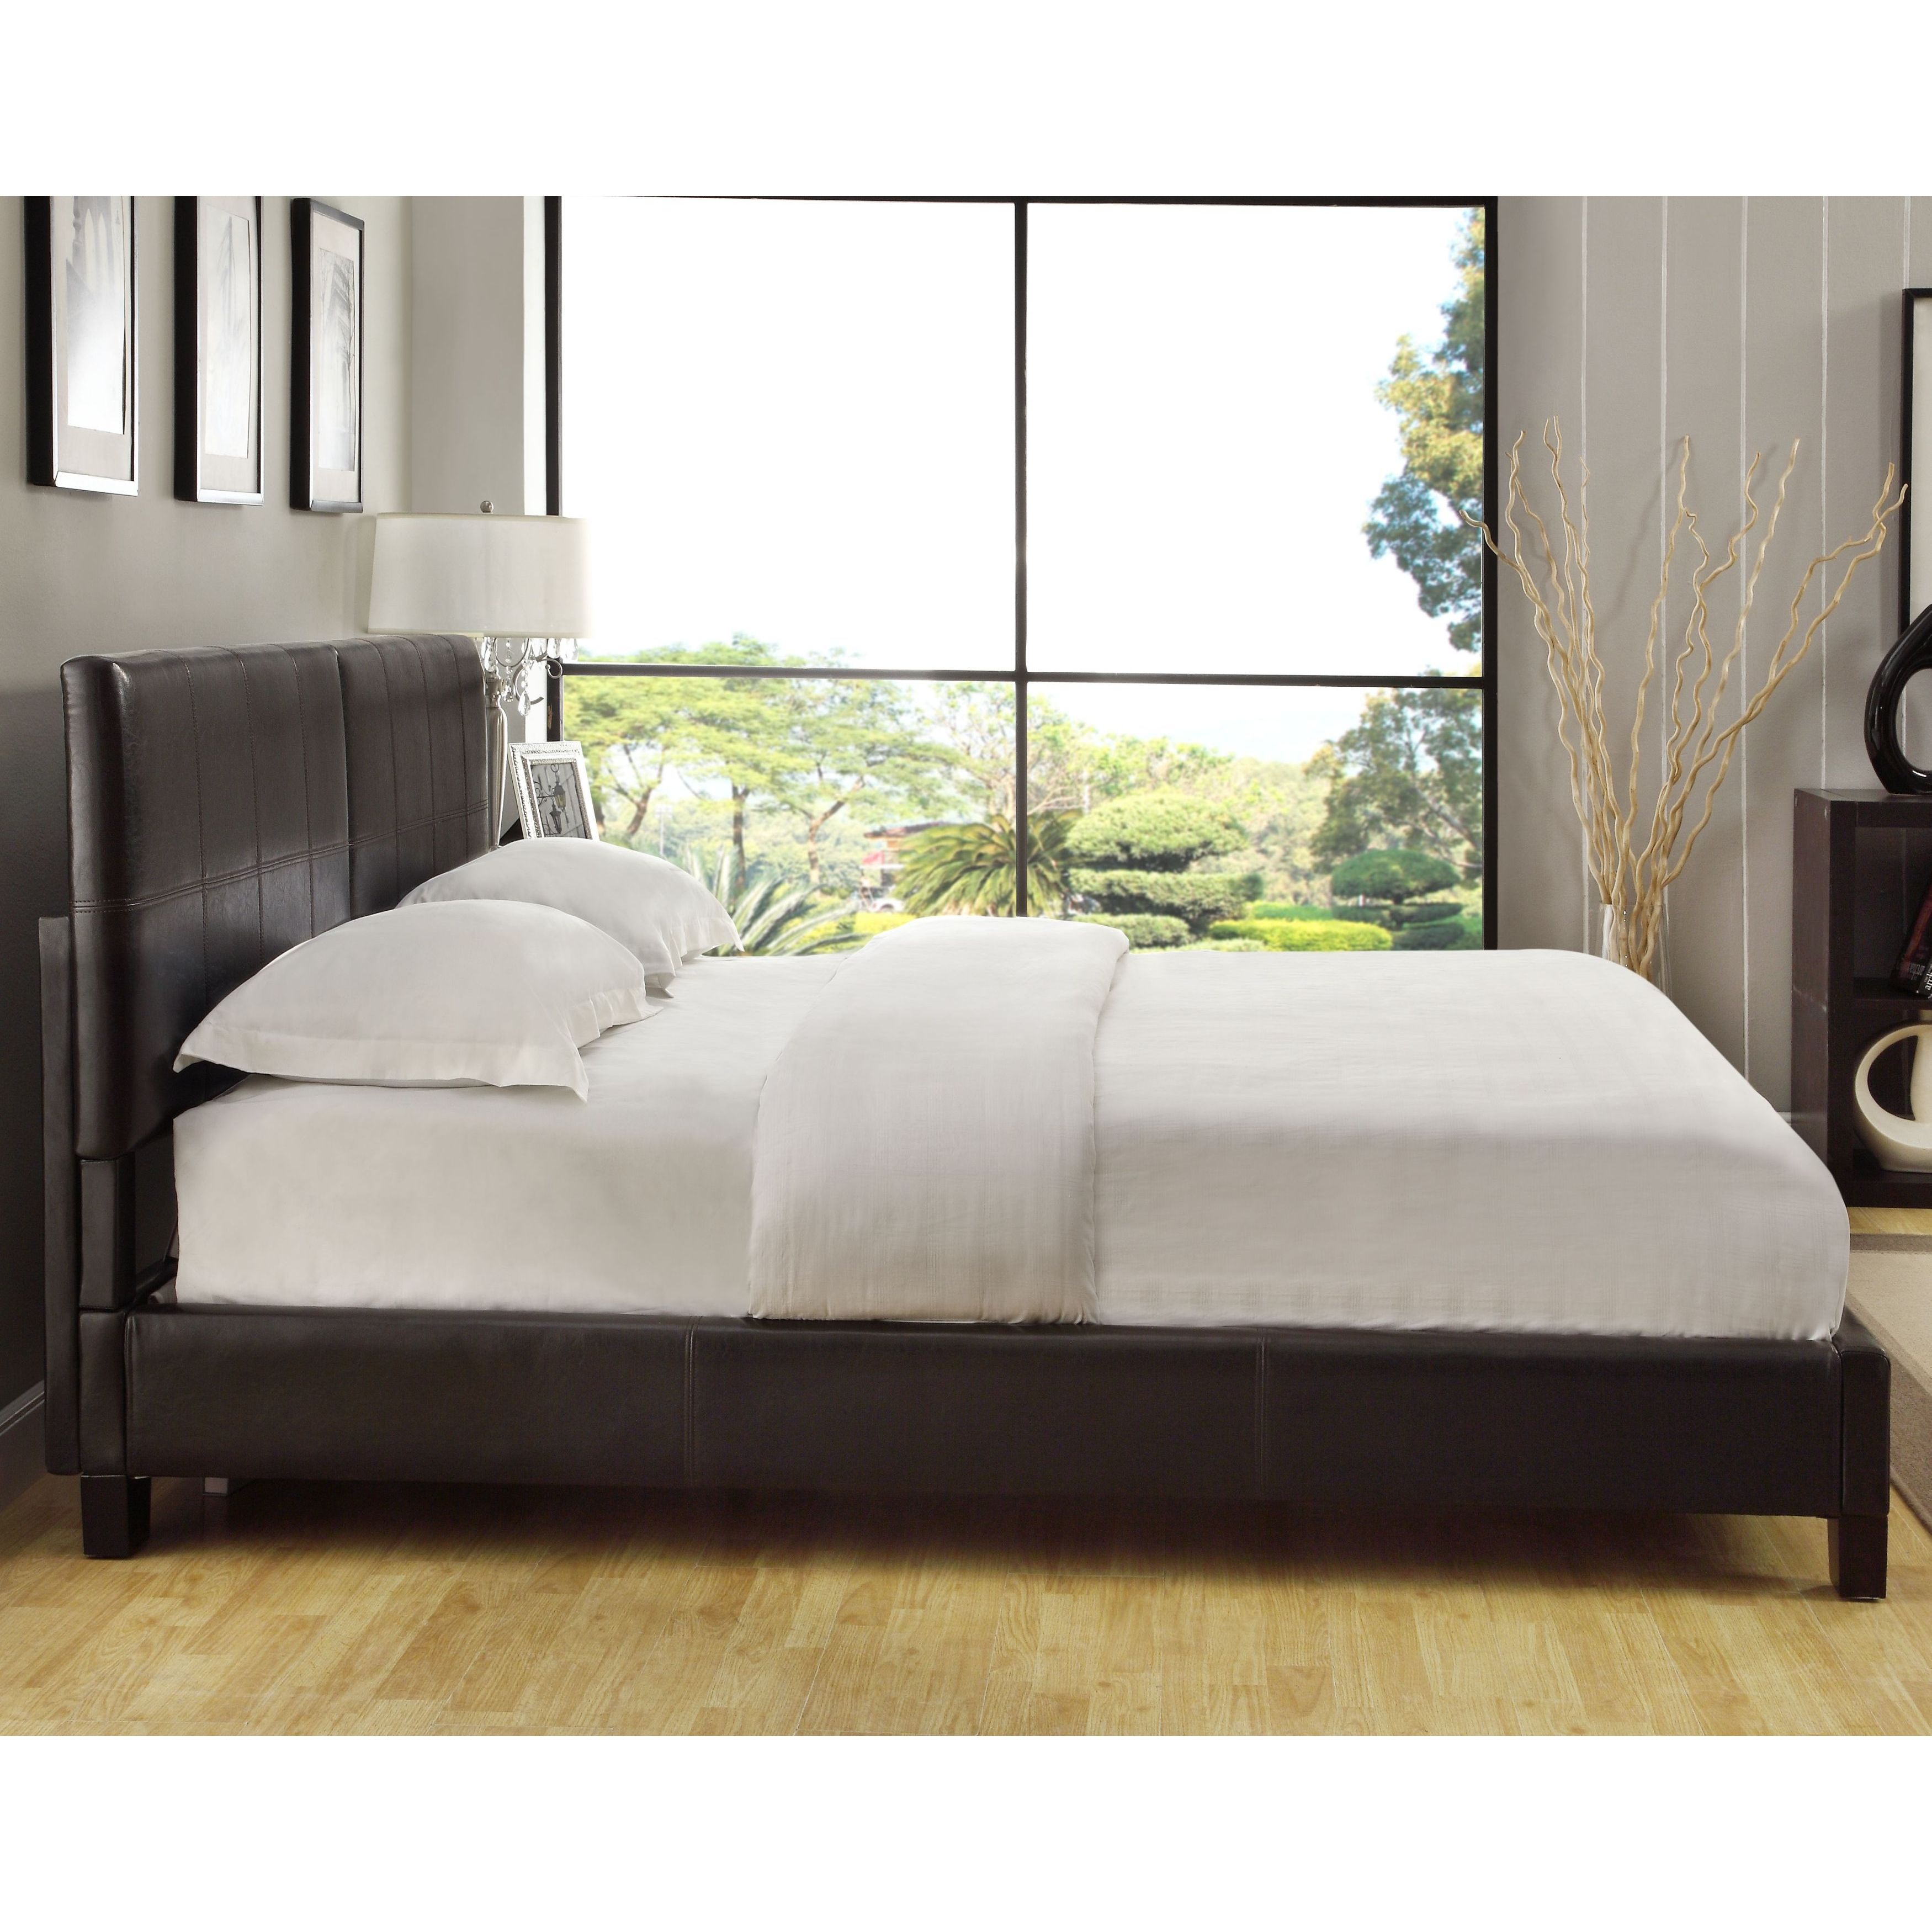 Square Platform King Or Cal Synthetic Leather Upholstery Bed Frame